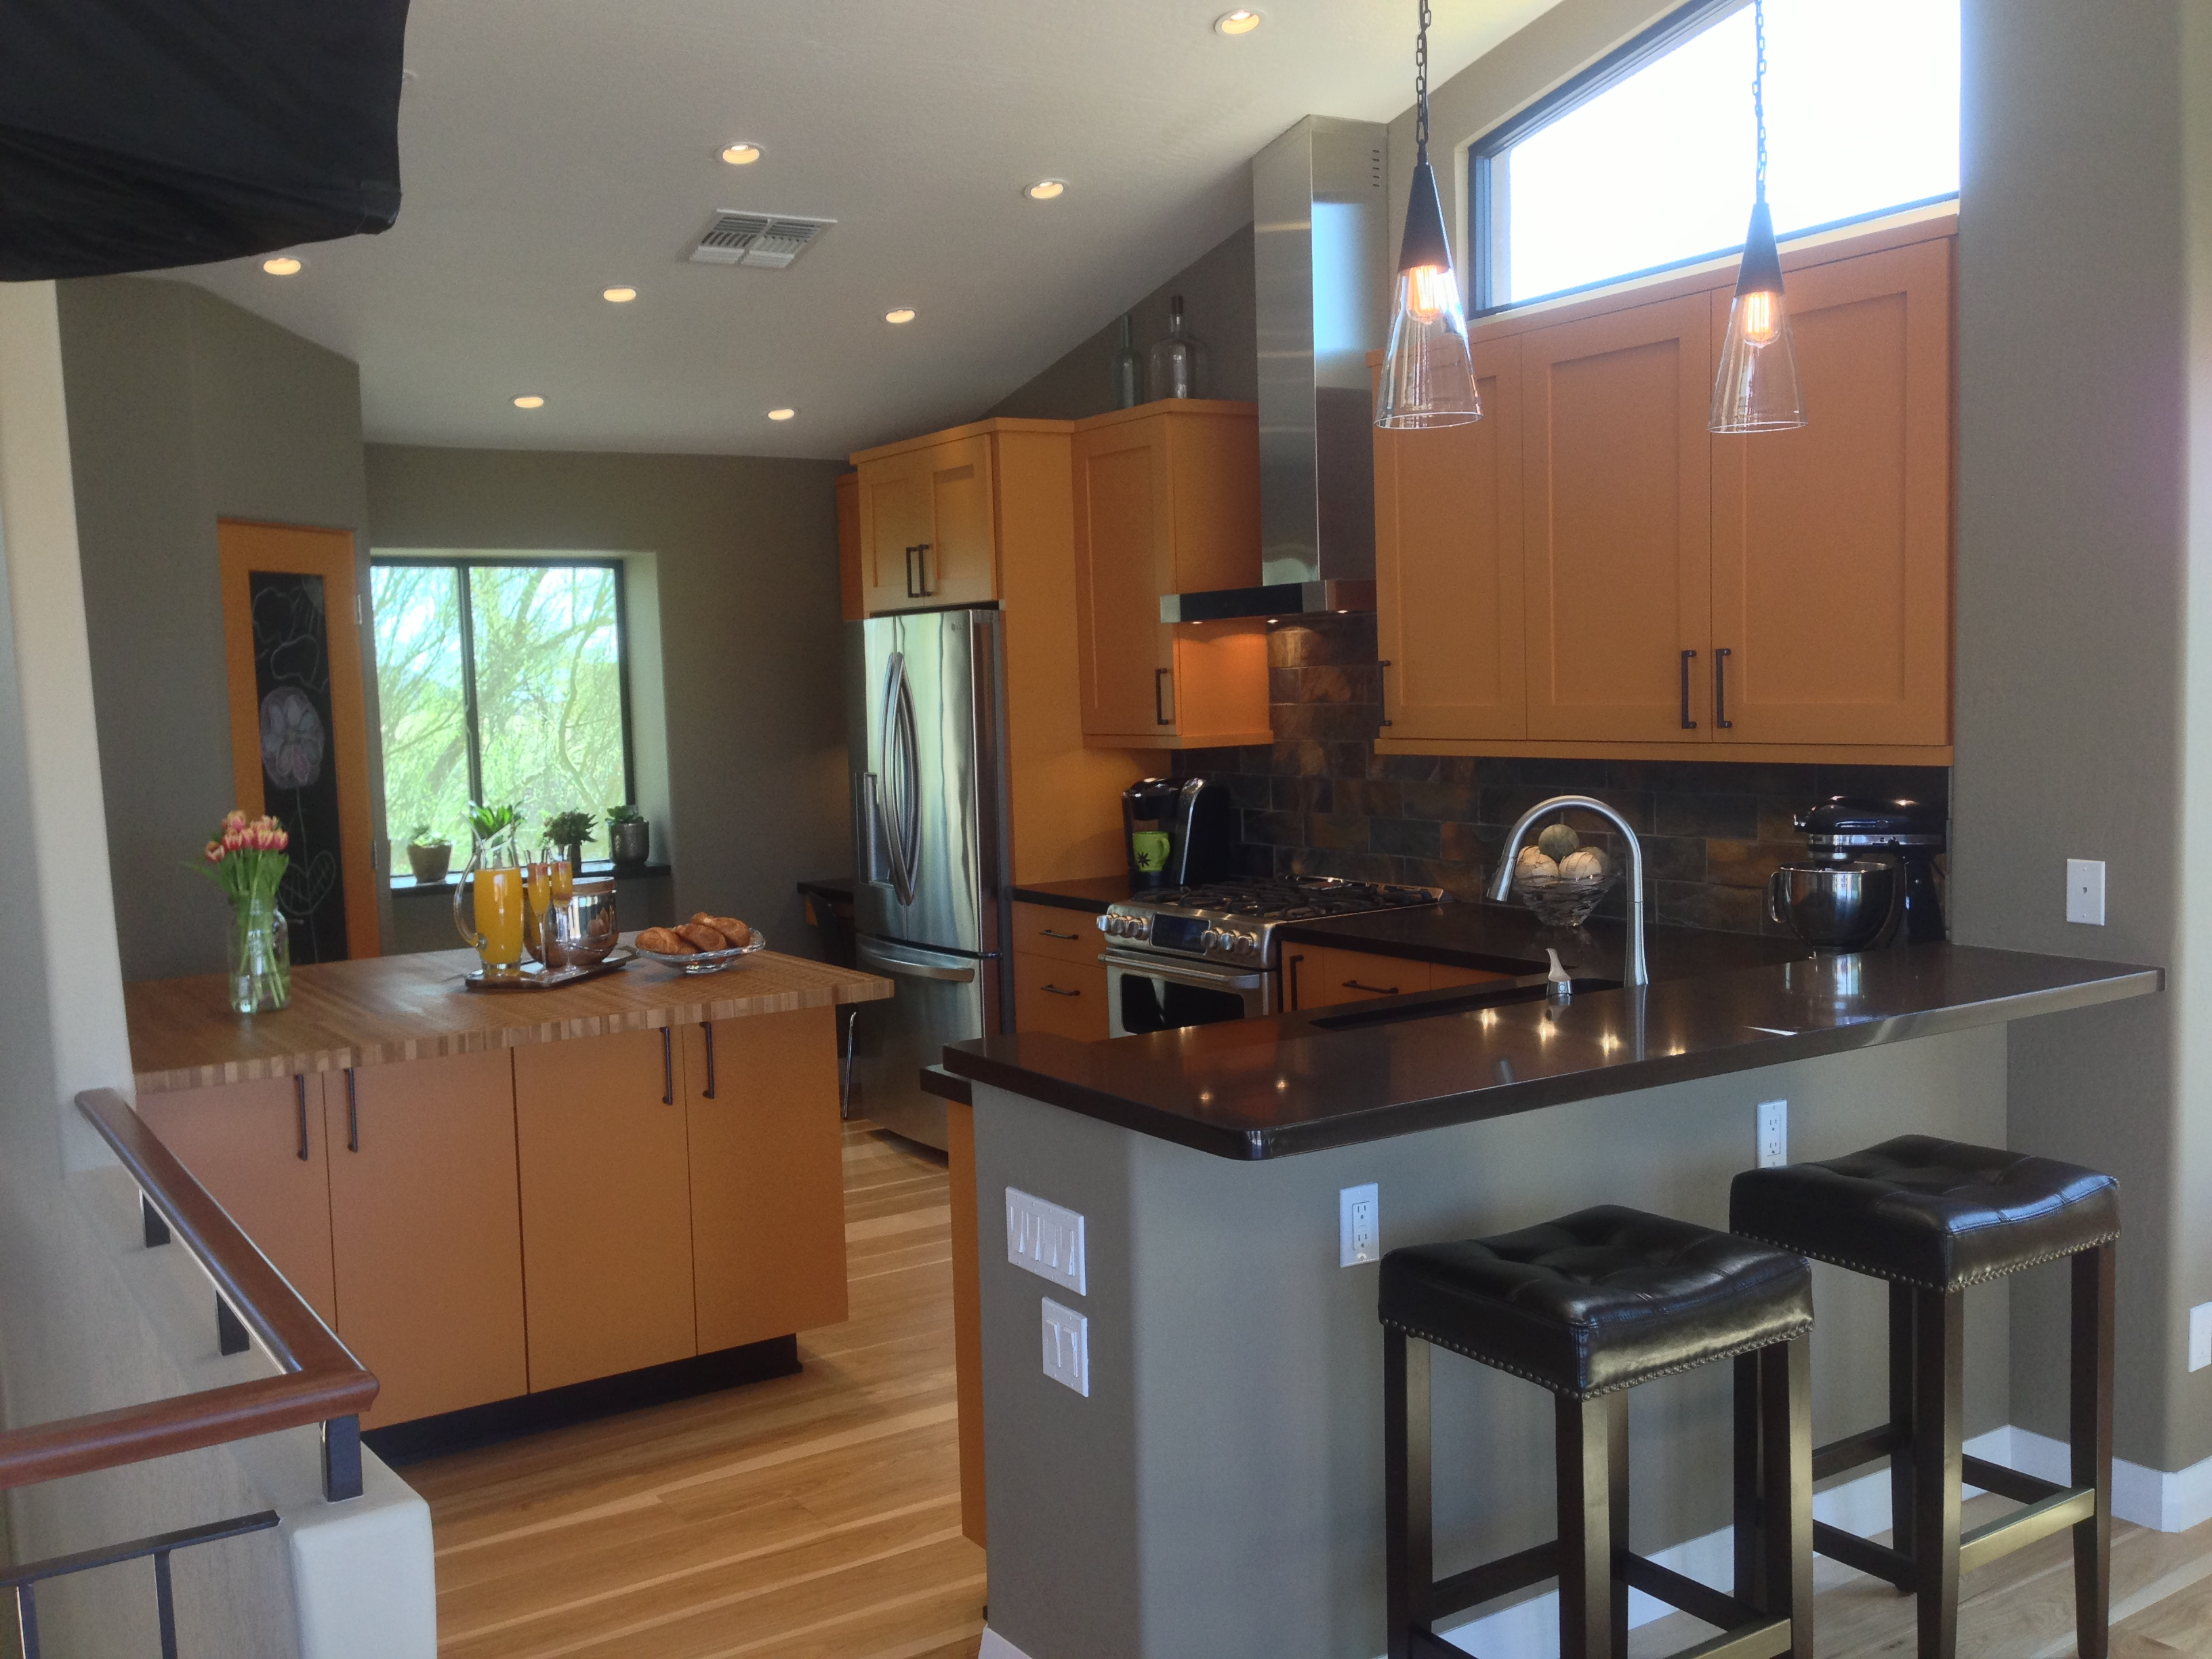 Kitchen Black Granite Countertops : Granite countertops for kitchen remodeling in scottsdale